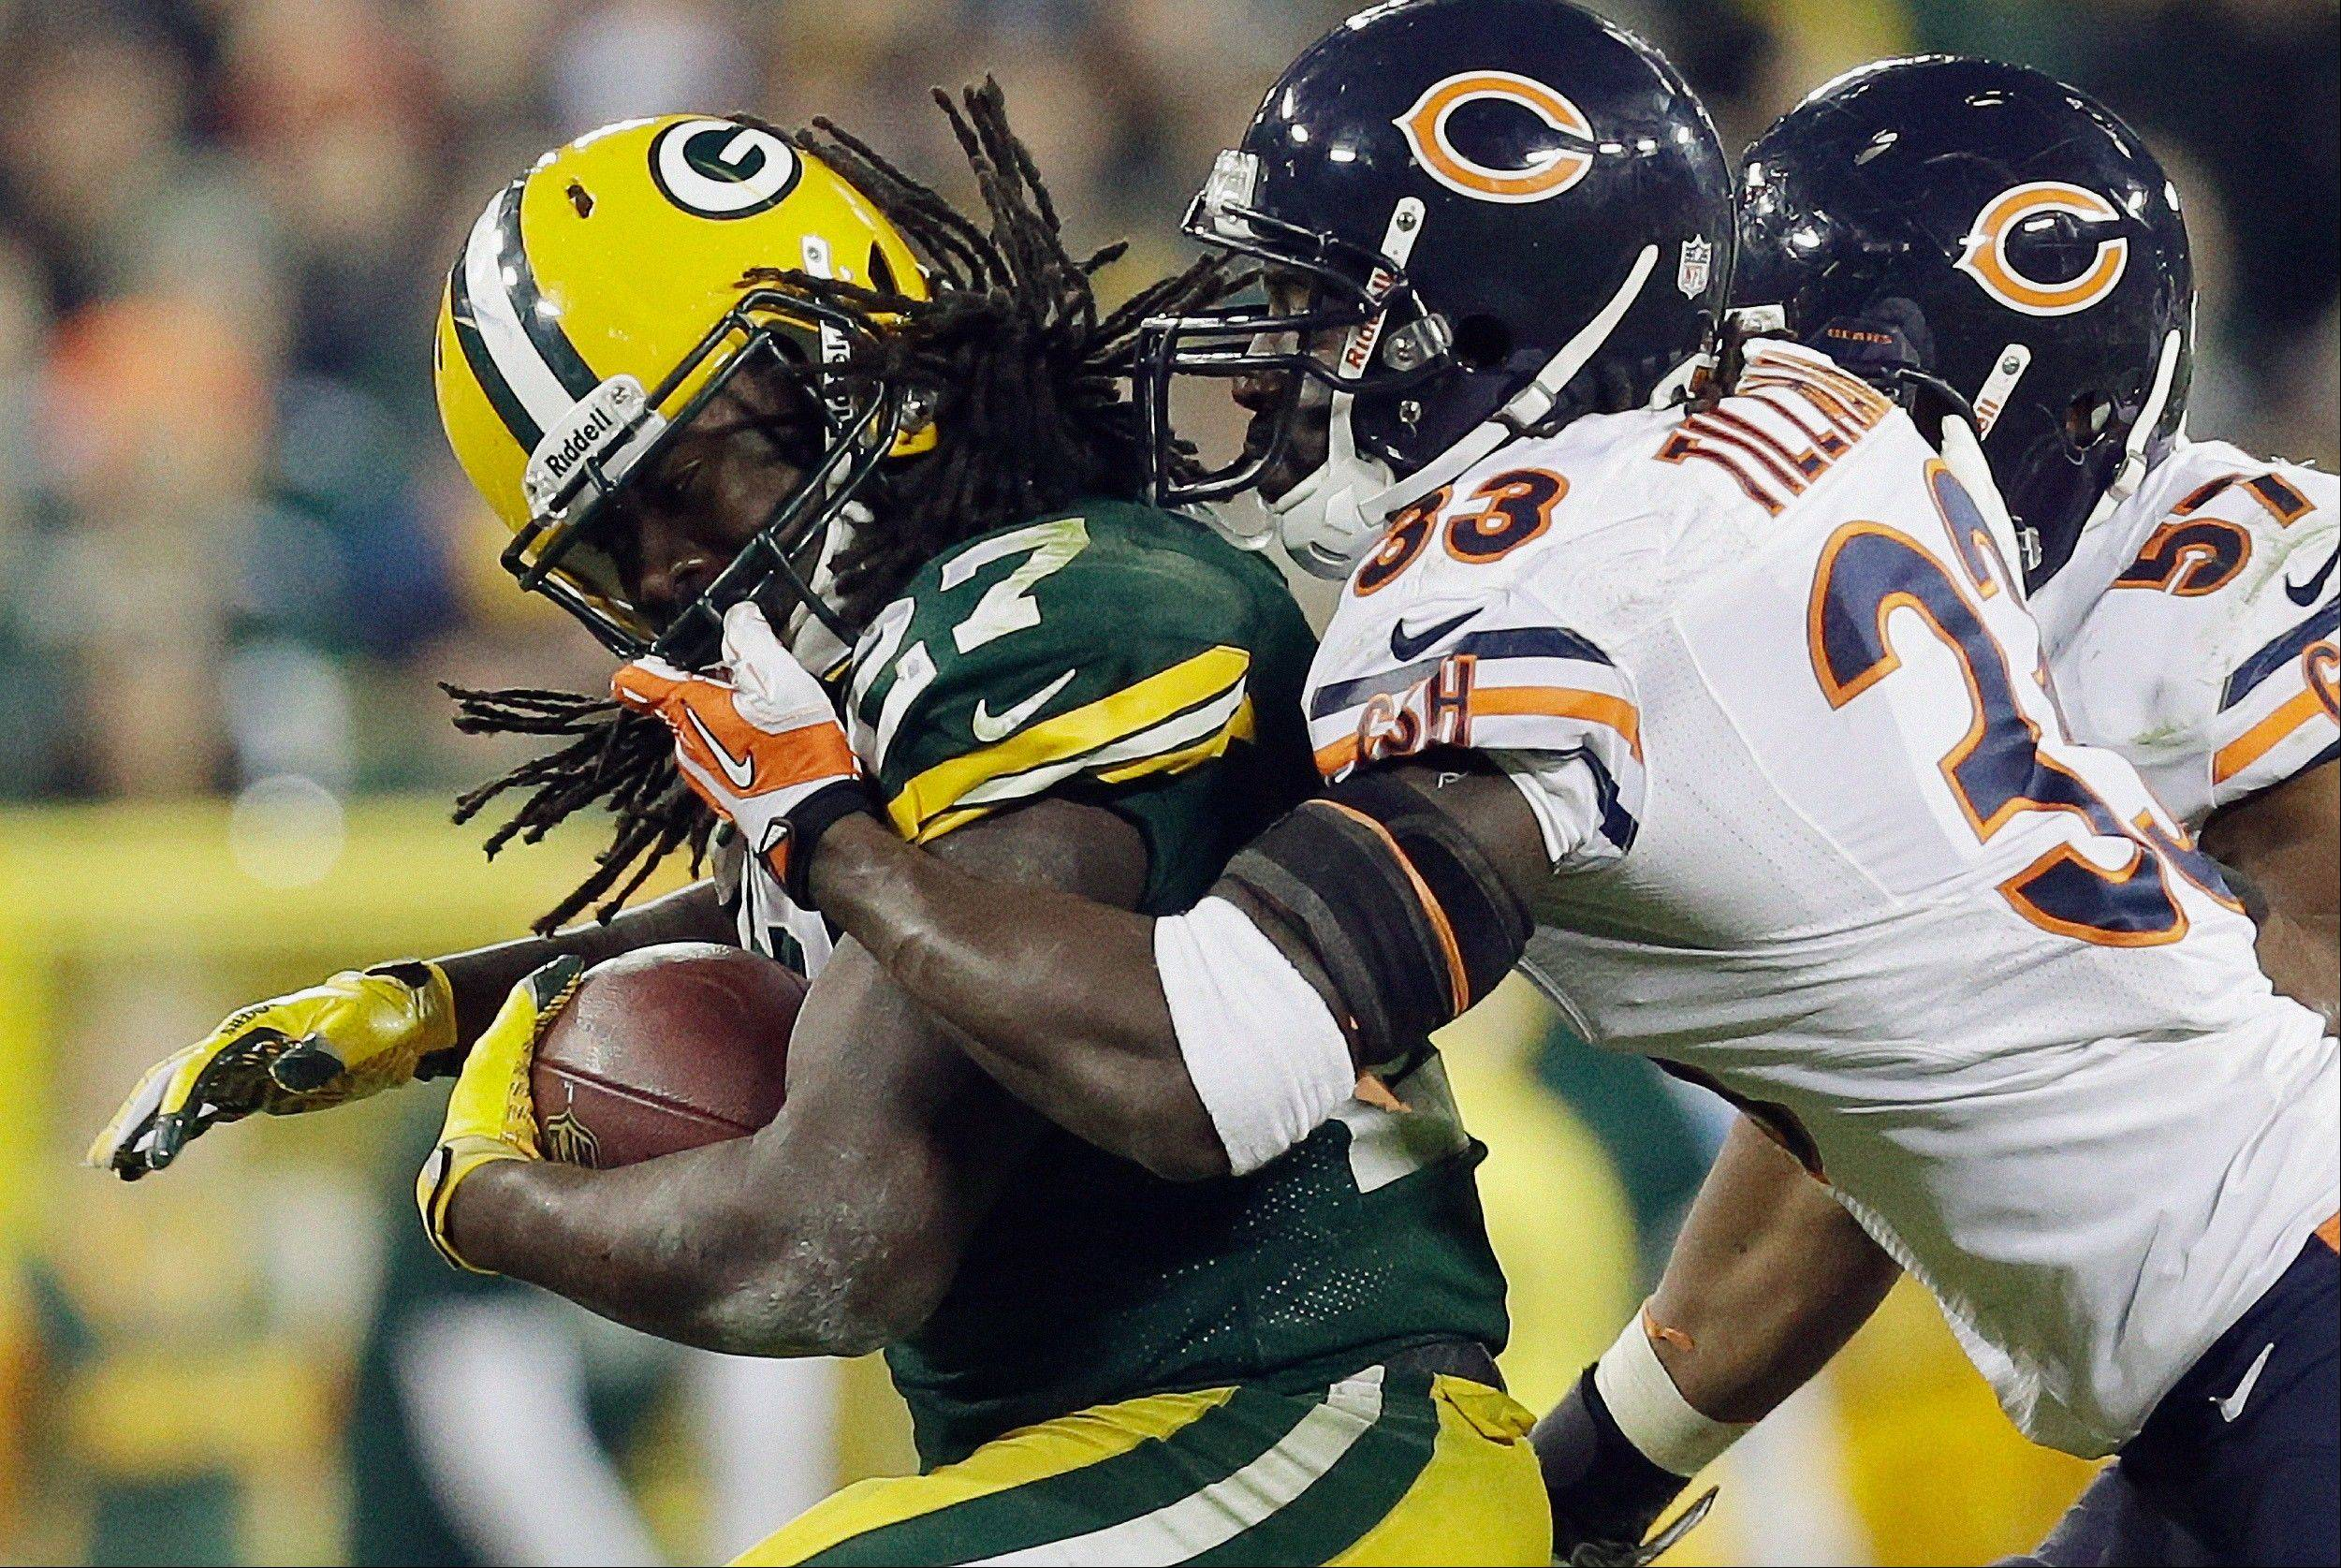 Charles Tillman (33) grabs the face mask of Green Bay Packers' Eddie Lacy during the second half of an NFL football game Monday, Nov. 4, 2013, in Green Bay, Wis. The Bears won 27-20.